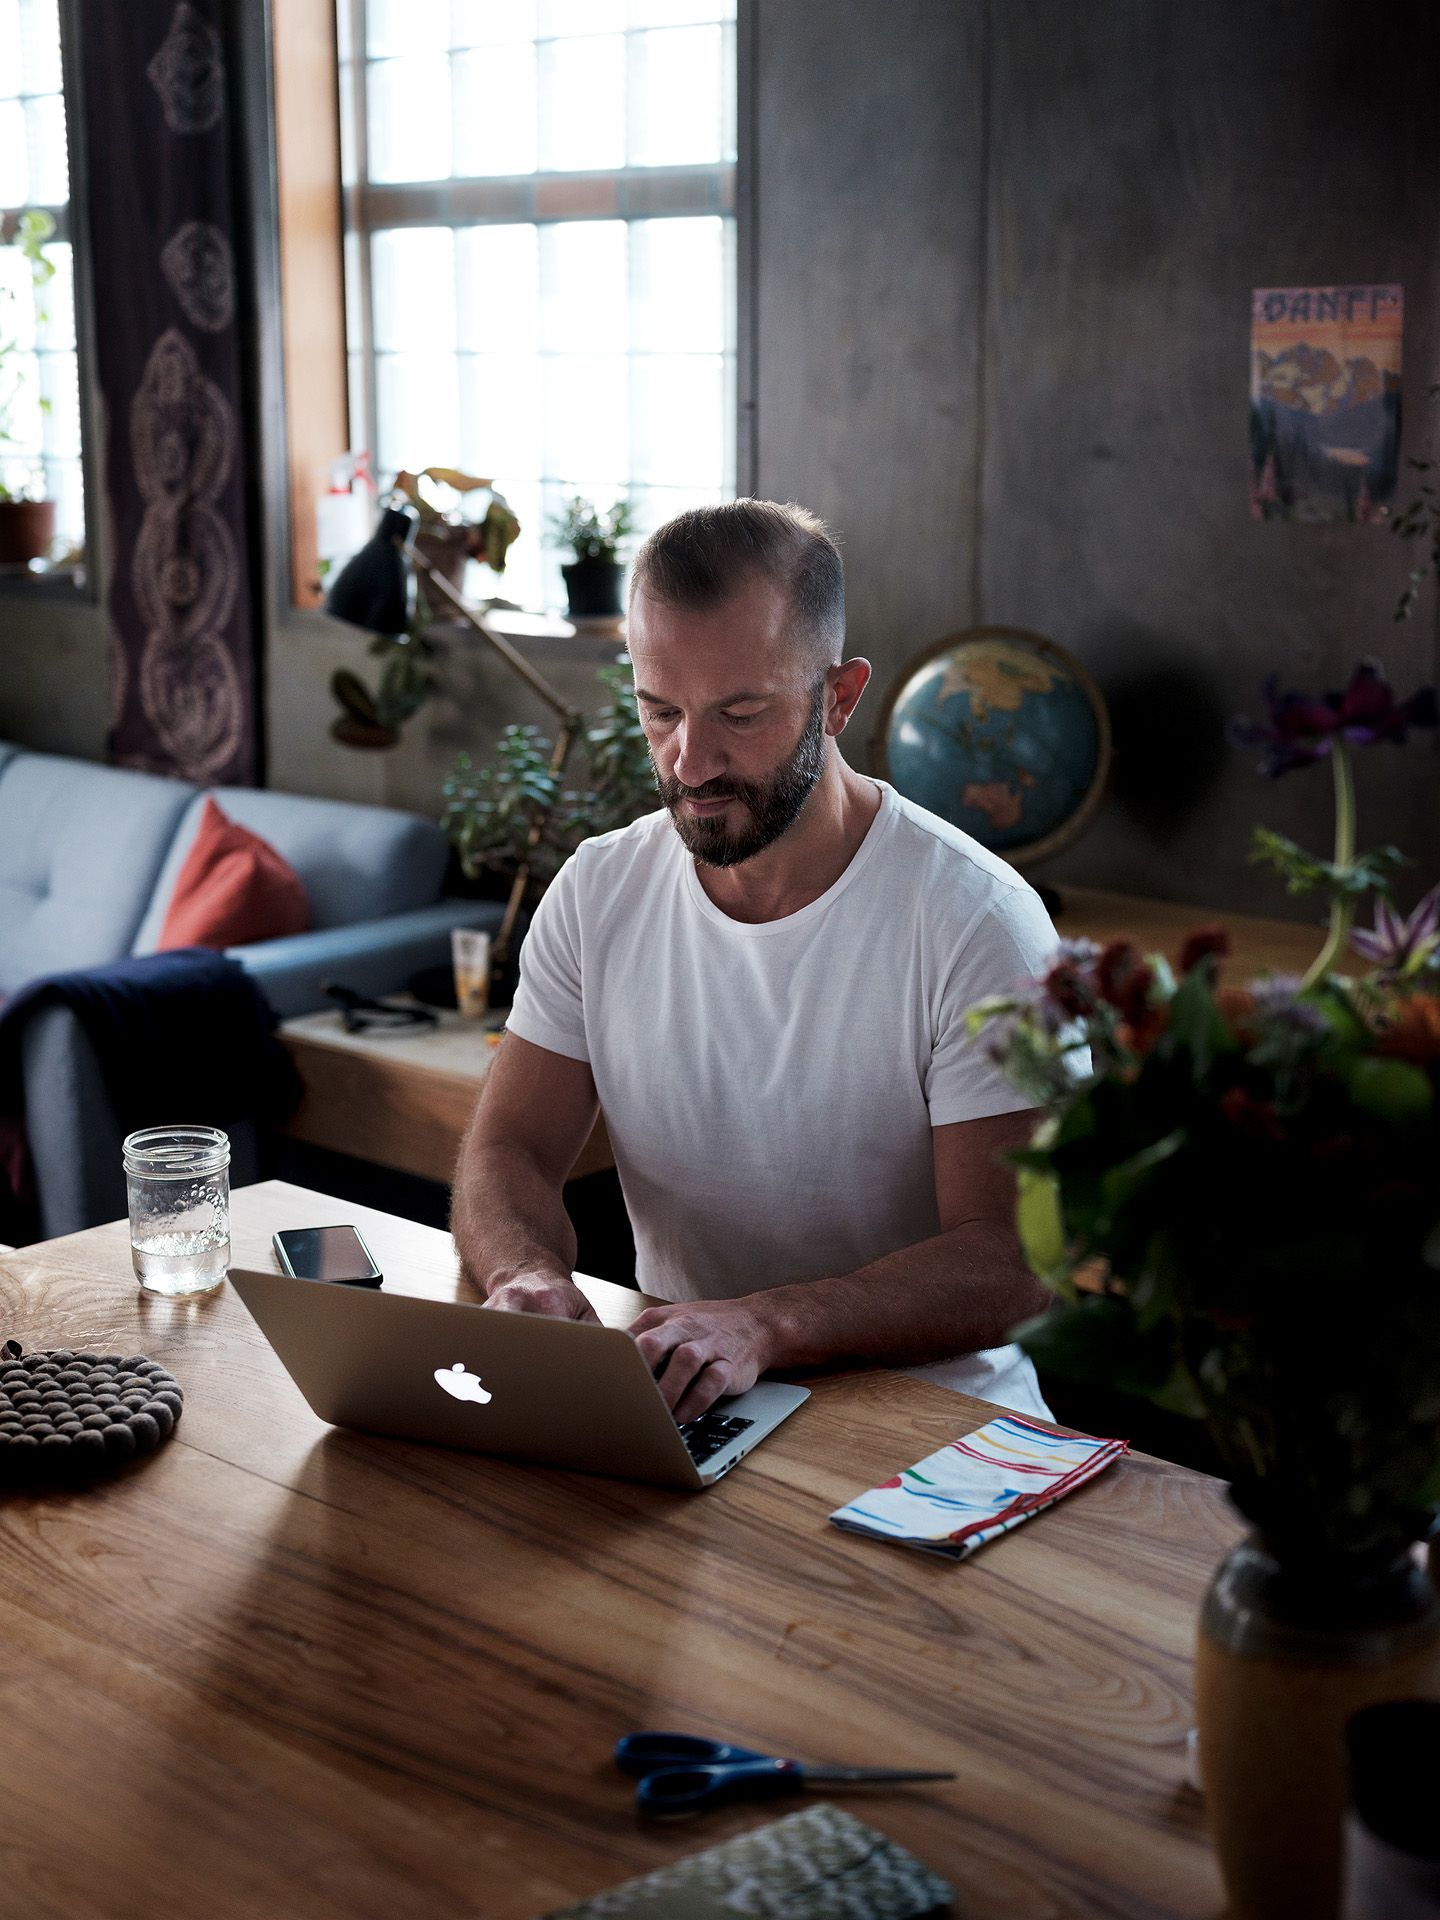 saxophonist and composer Colin Stetson sitting at table working on his macbook wearing white shirt photographed by Guillaume Simoneau